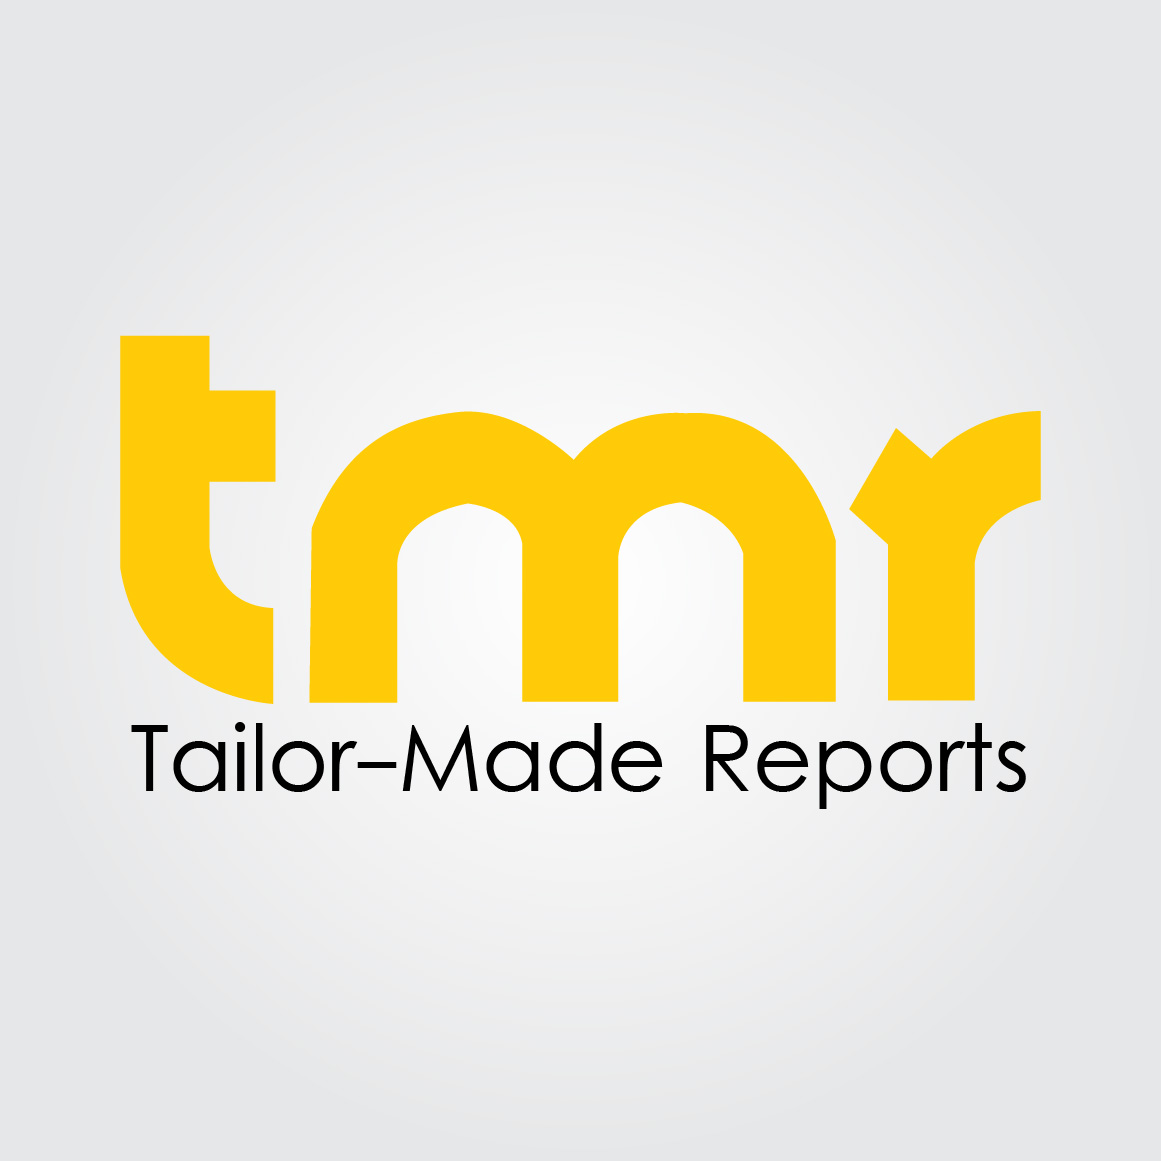 Commercial Tabletop Kitchen Products Market | Augmented demand for tabletop items drive the market